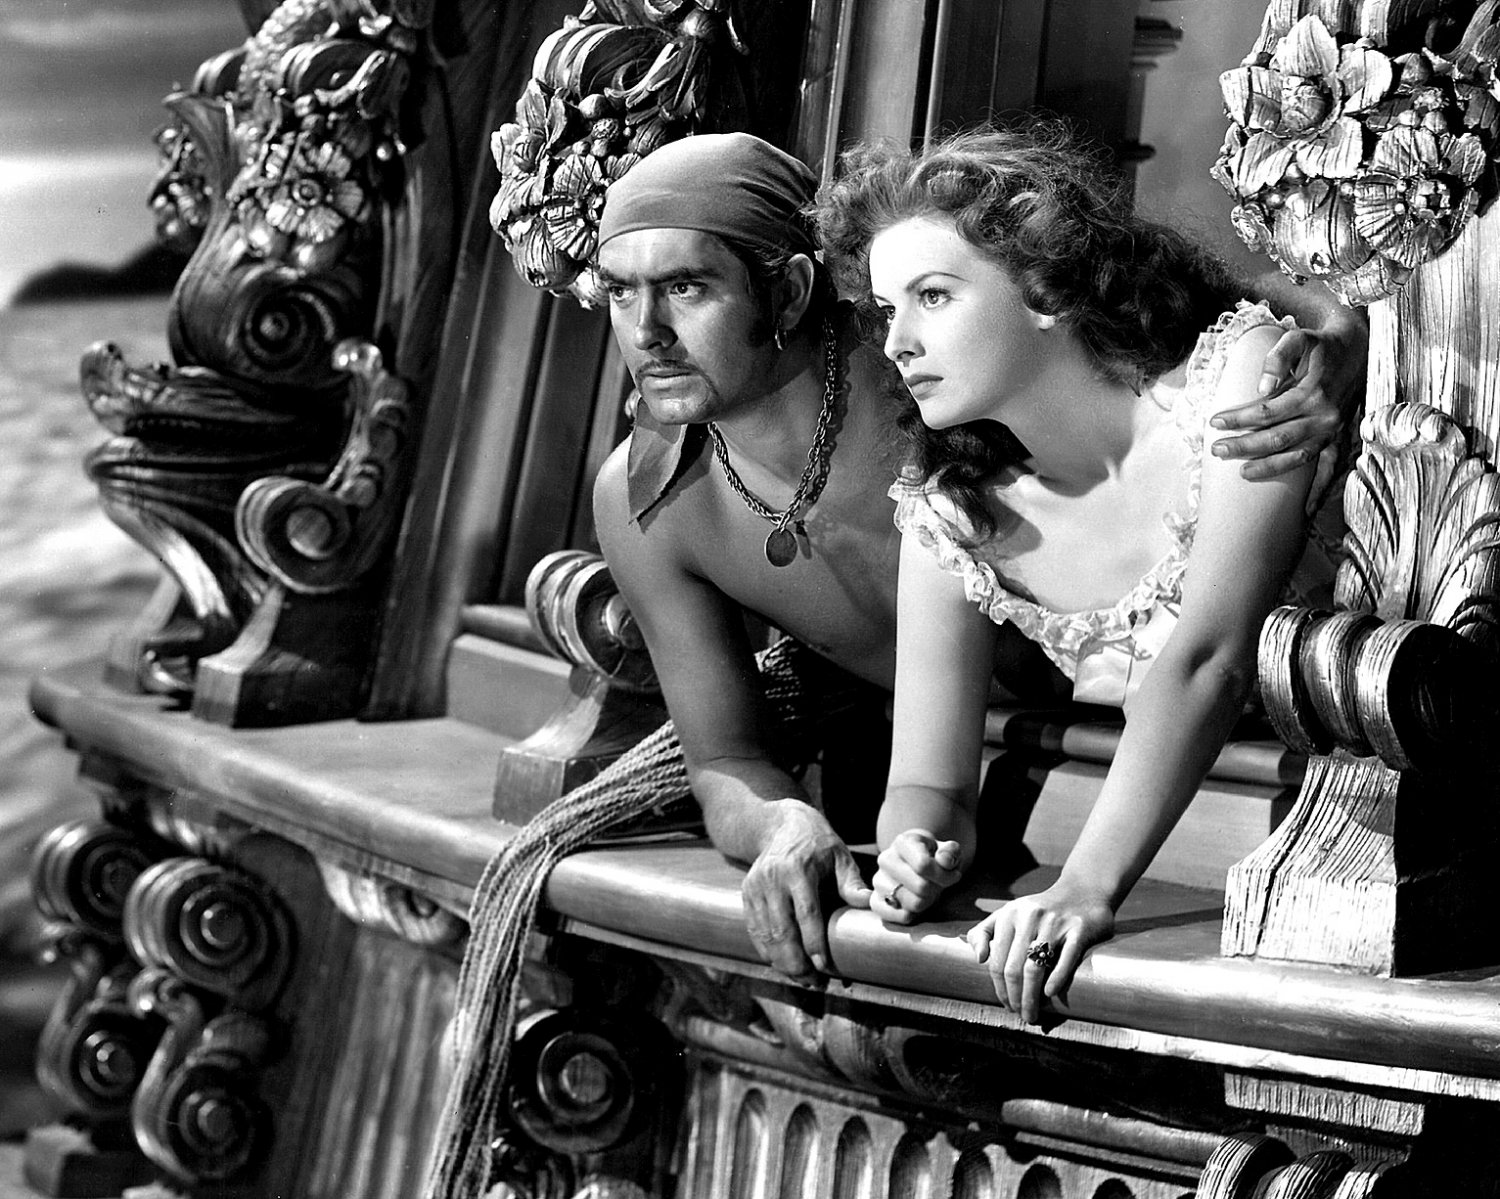 TYRONE POWER & MAUREEN O'HARA IN 'THE BLACK SWAN' 8X10 PUBLICITY PHOTO (ZY-068)